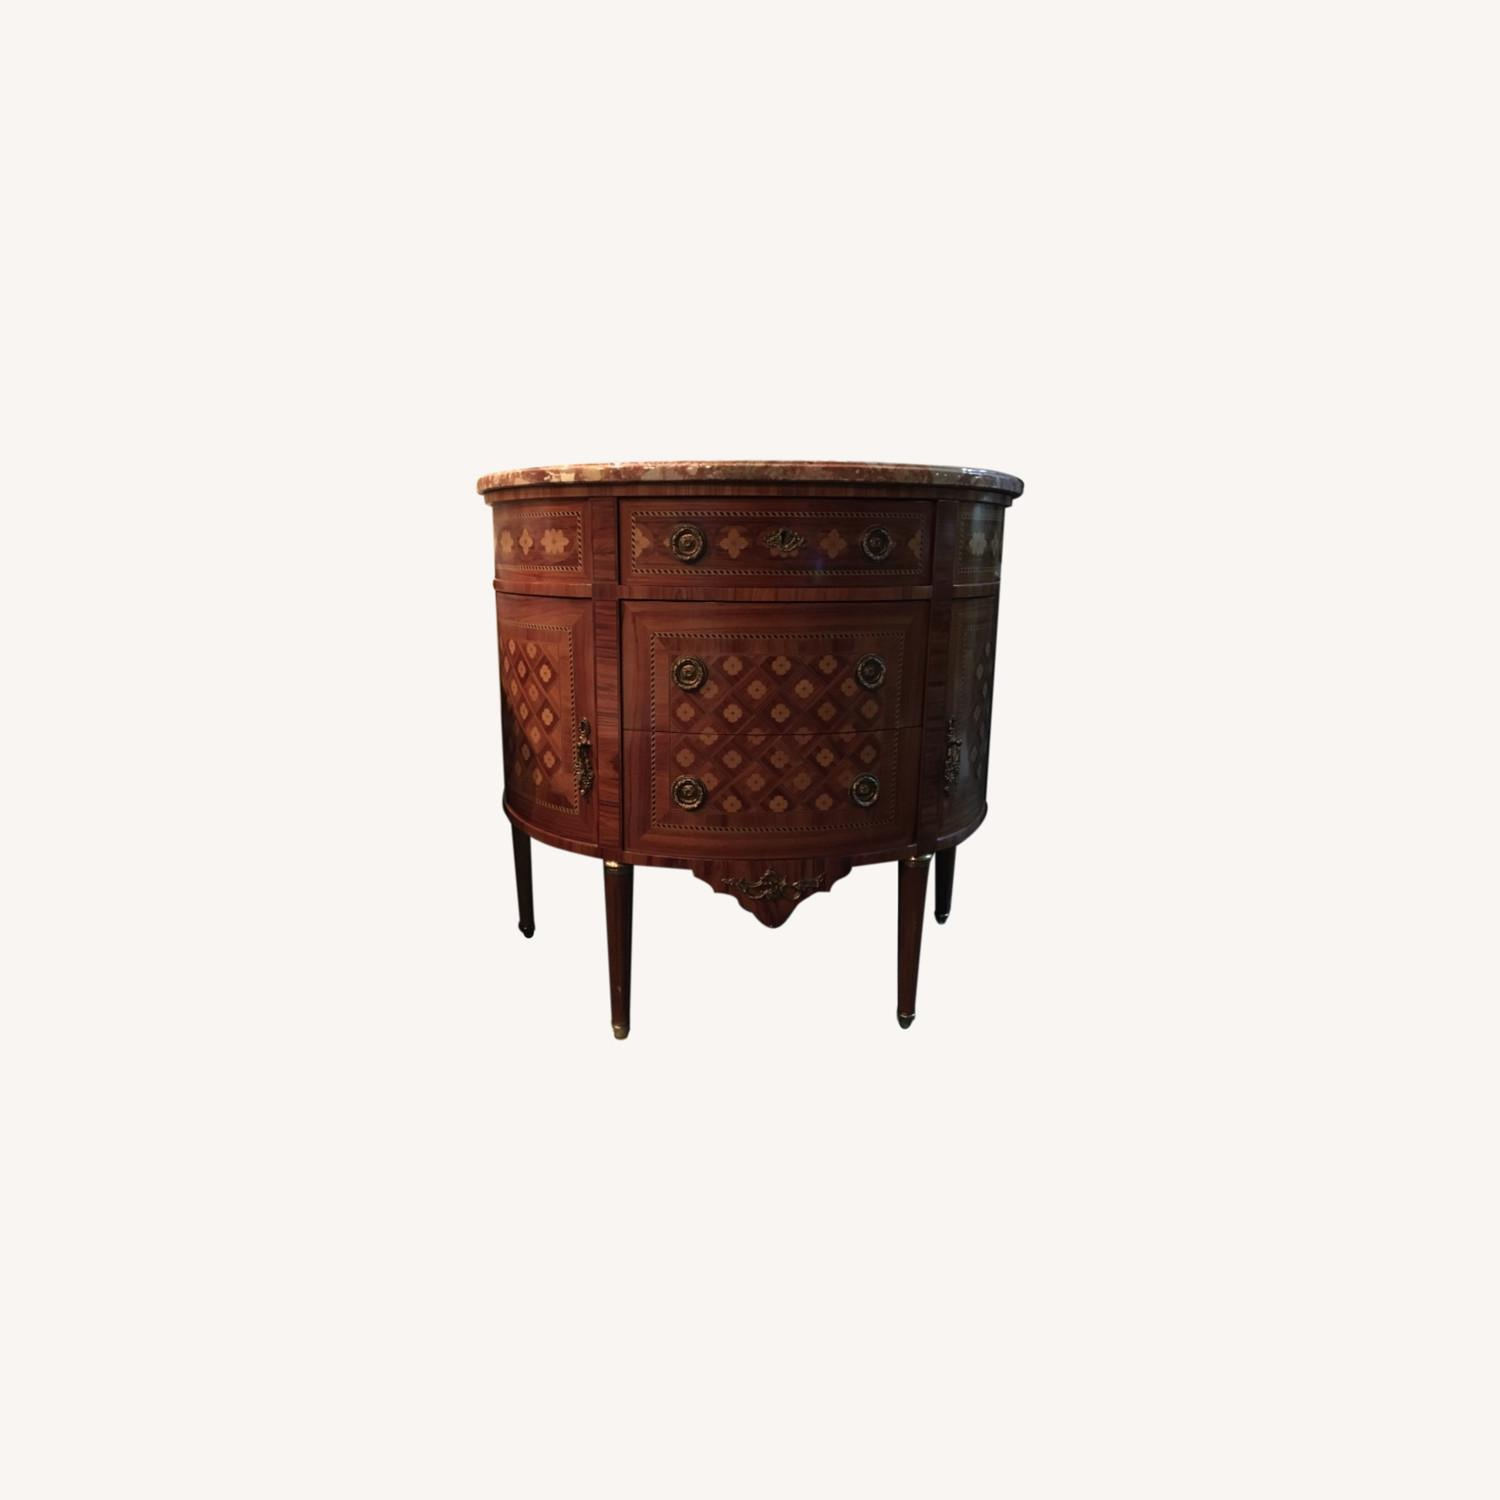 Louiexvi Style French Commodes - image-0